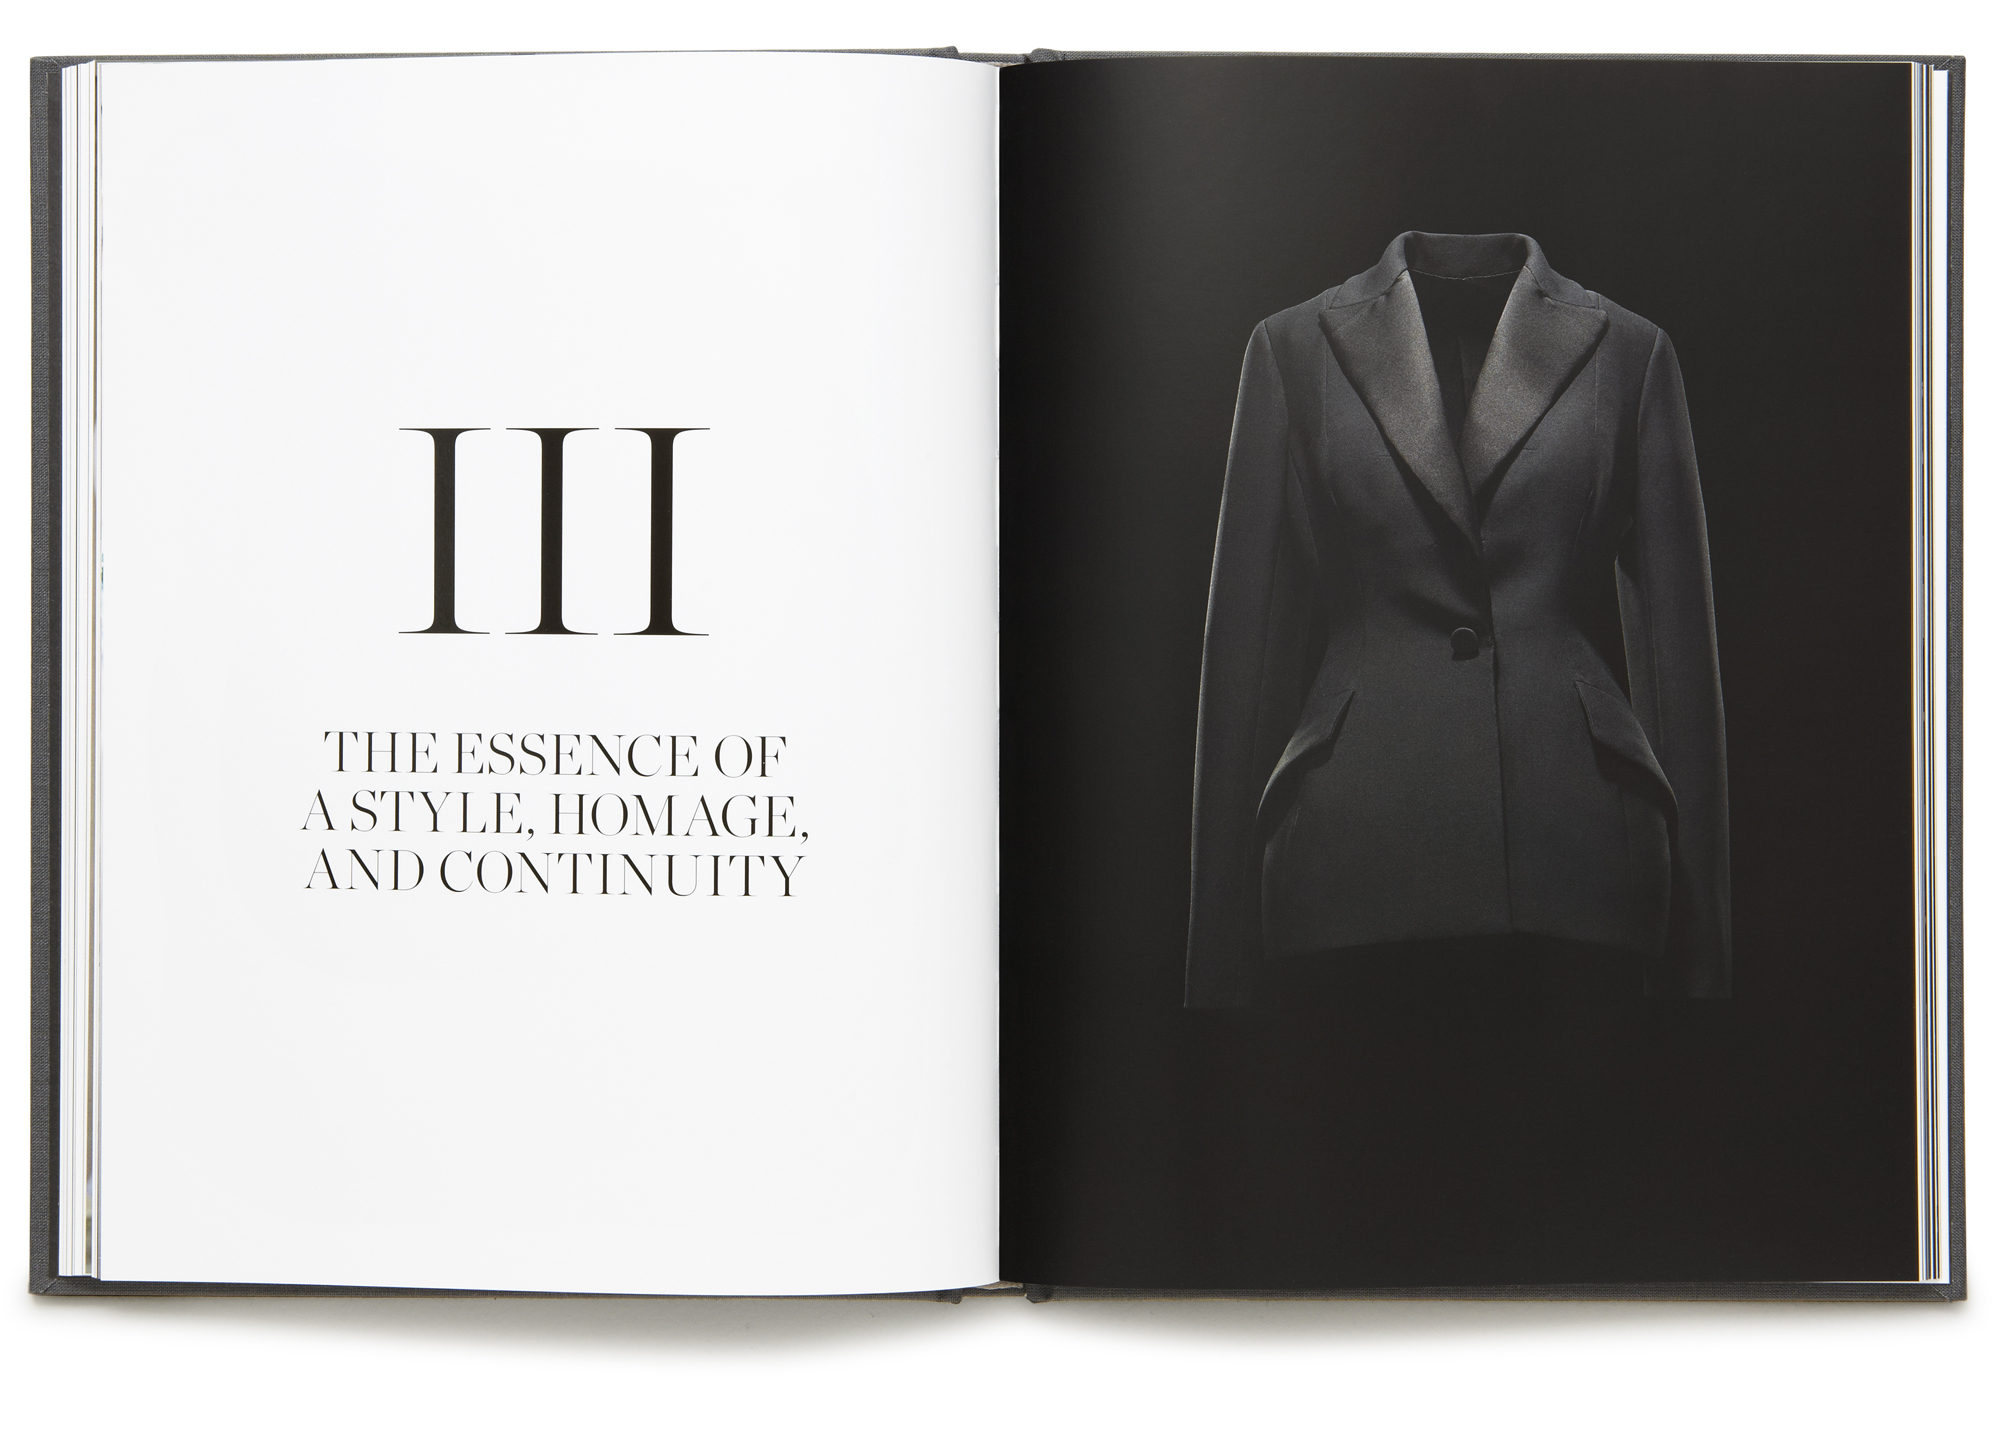 Daniel Baer – Dior – The New Look. <i>Rizzoli & Dior</i> 6